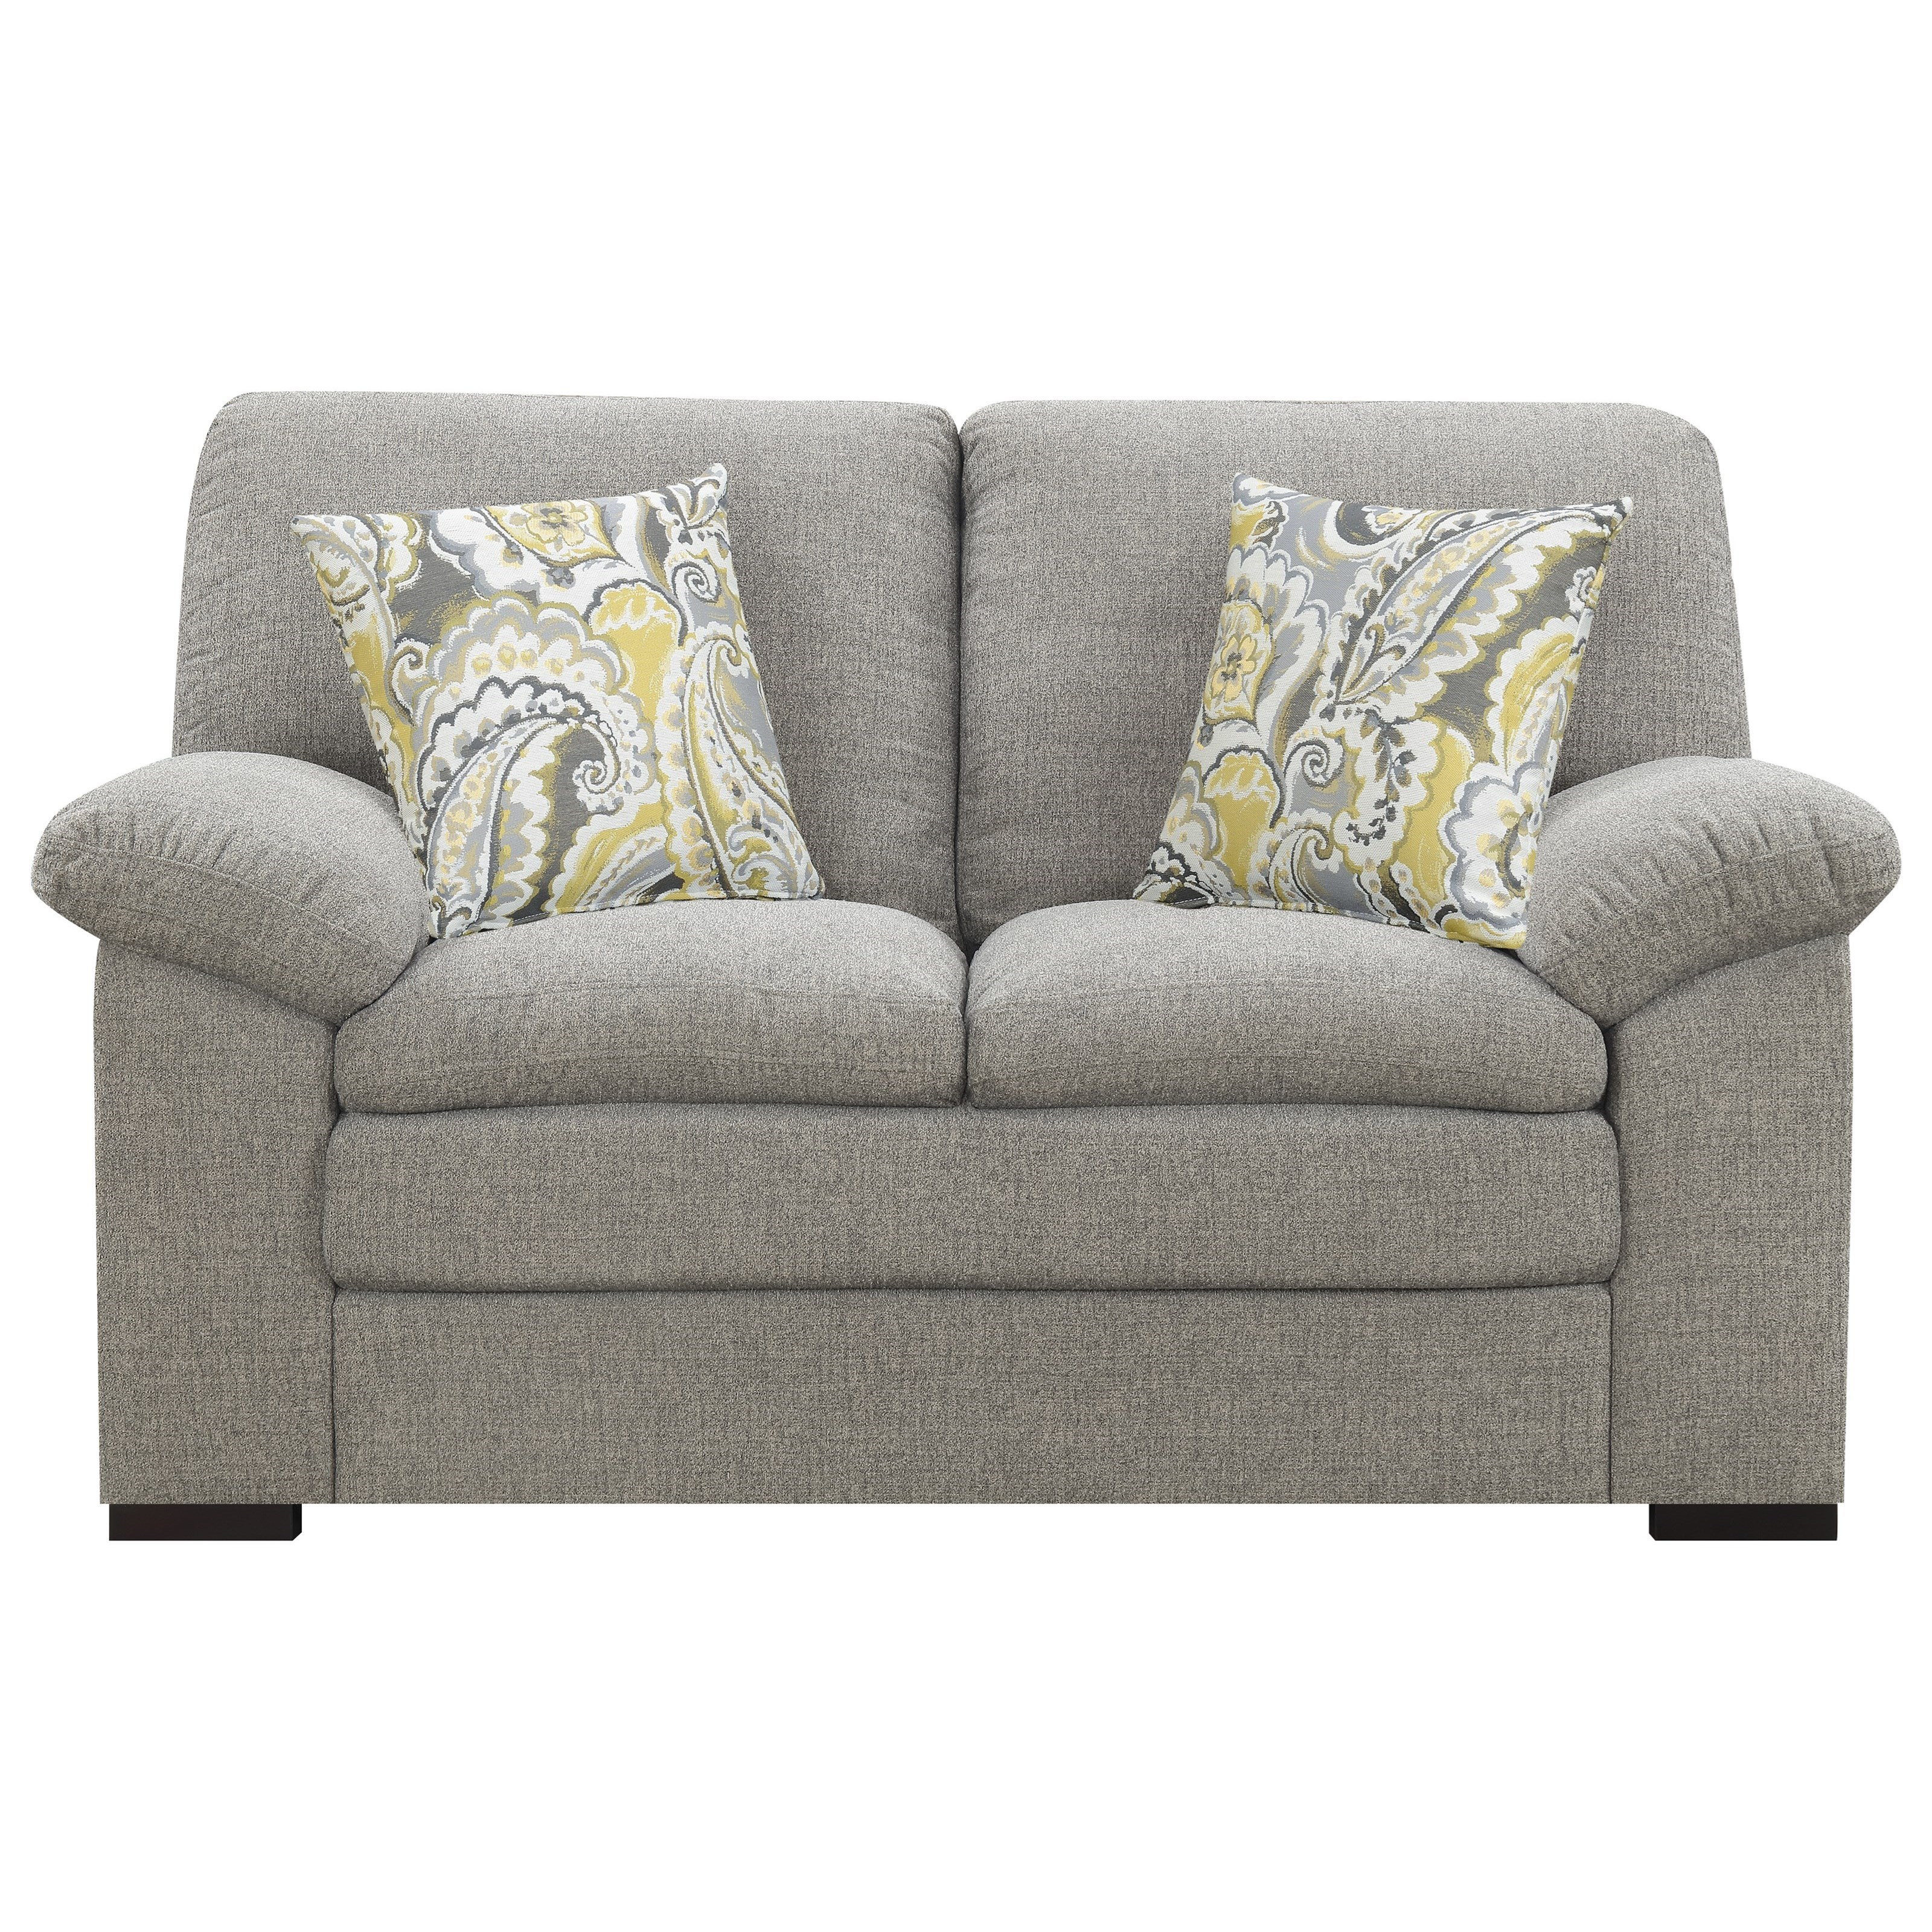 Grandview Loveseat with 2 Accent Pillows by Emerald at Suburban Furniture